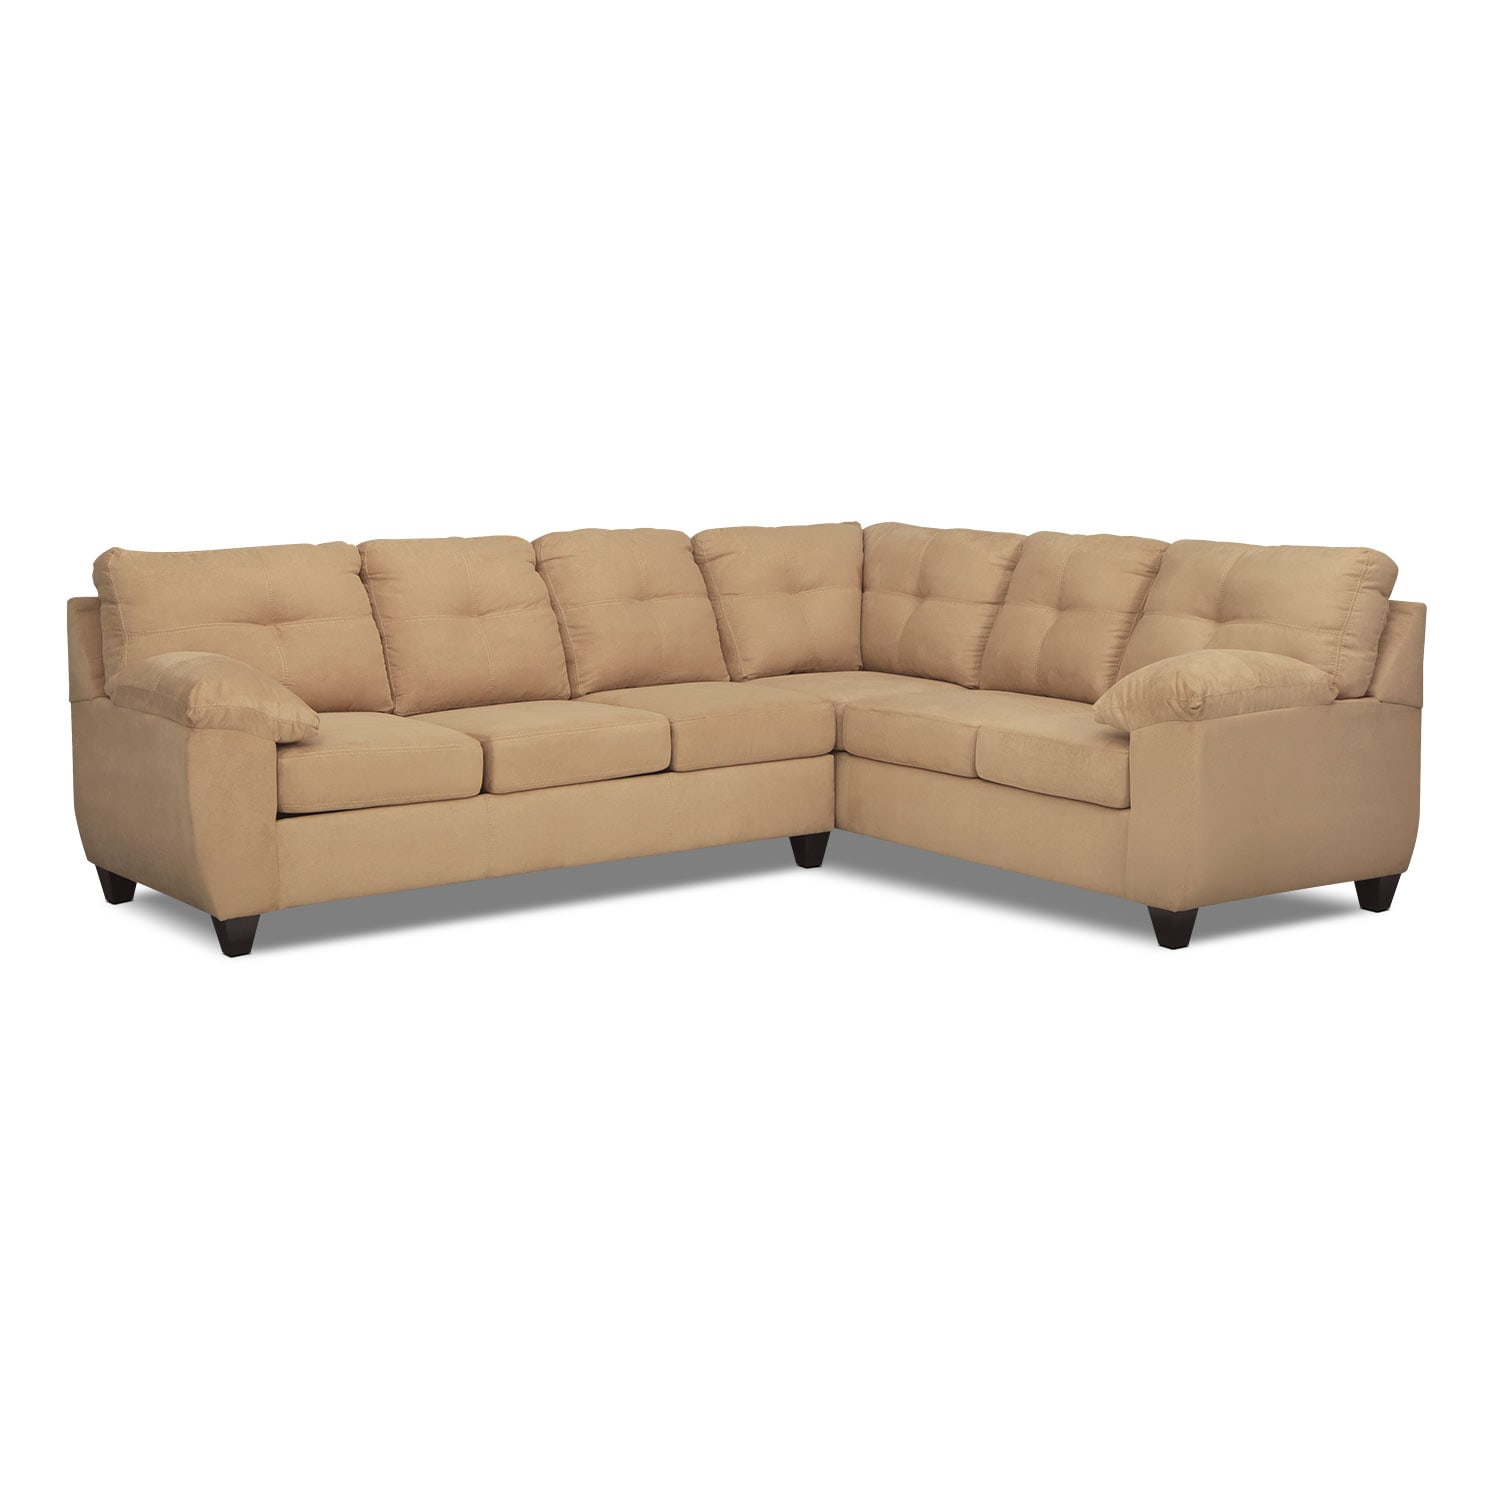 Ricardo 2 Piece Memory Foam Sleeper Sectional With Right